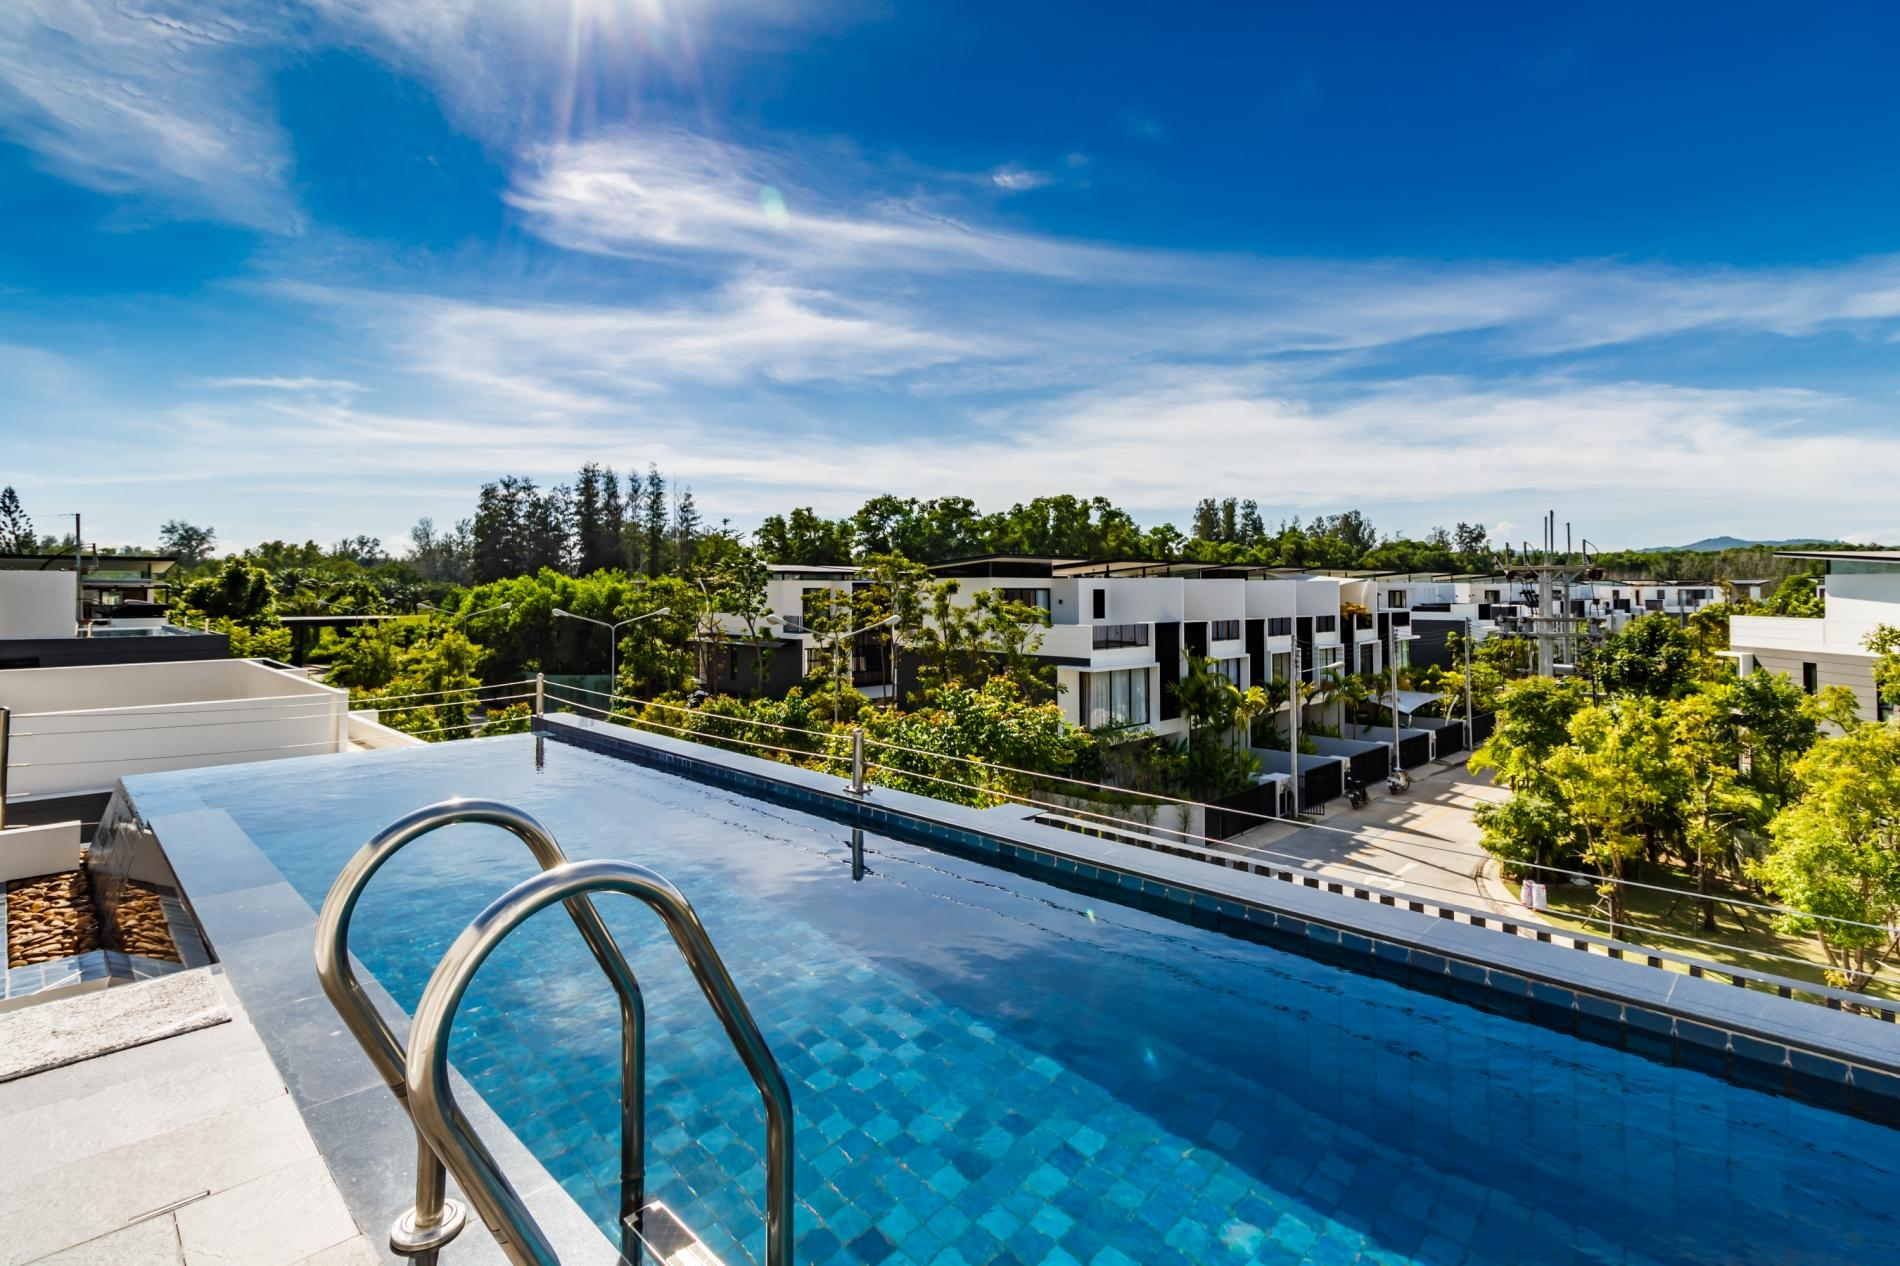 Apartment LP101 - Private rooftop pool villa in Laguna for 9 people  near restaurants and shops photo 16936715